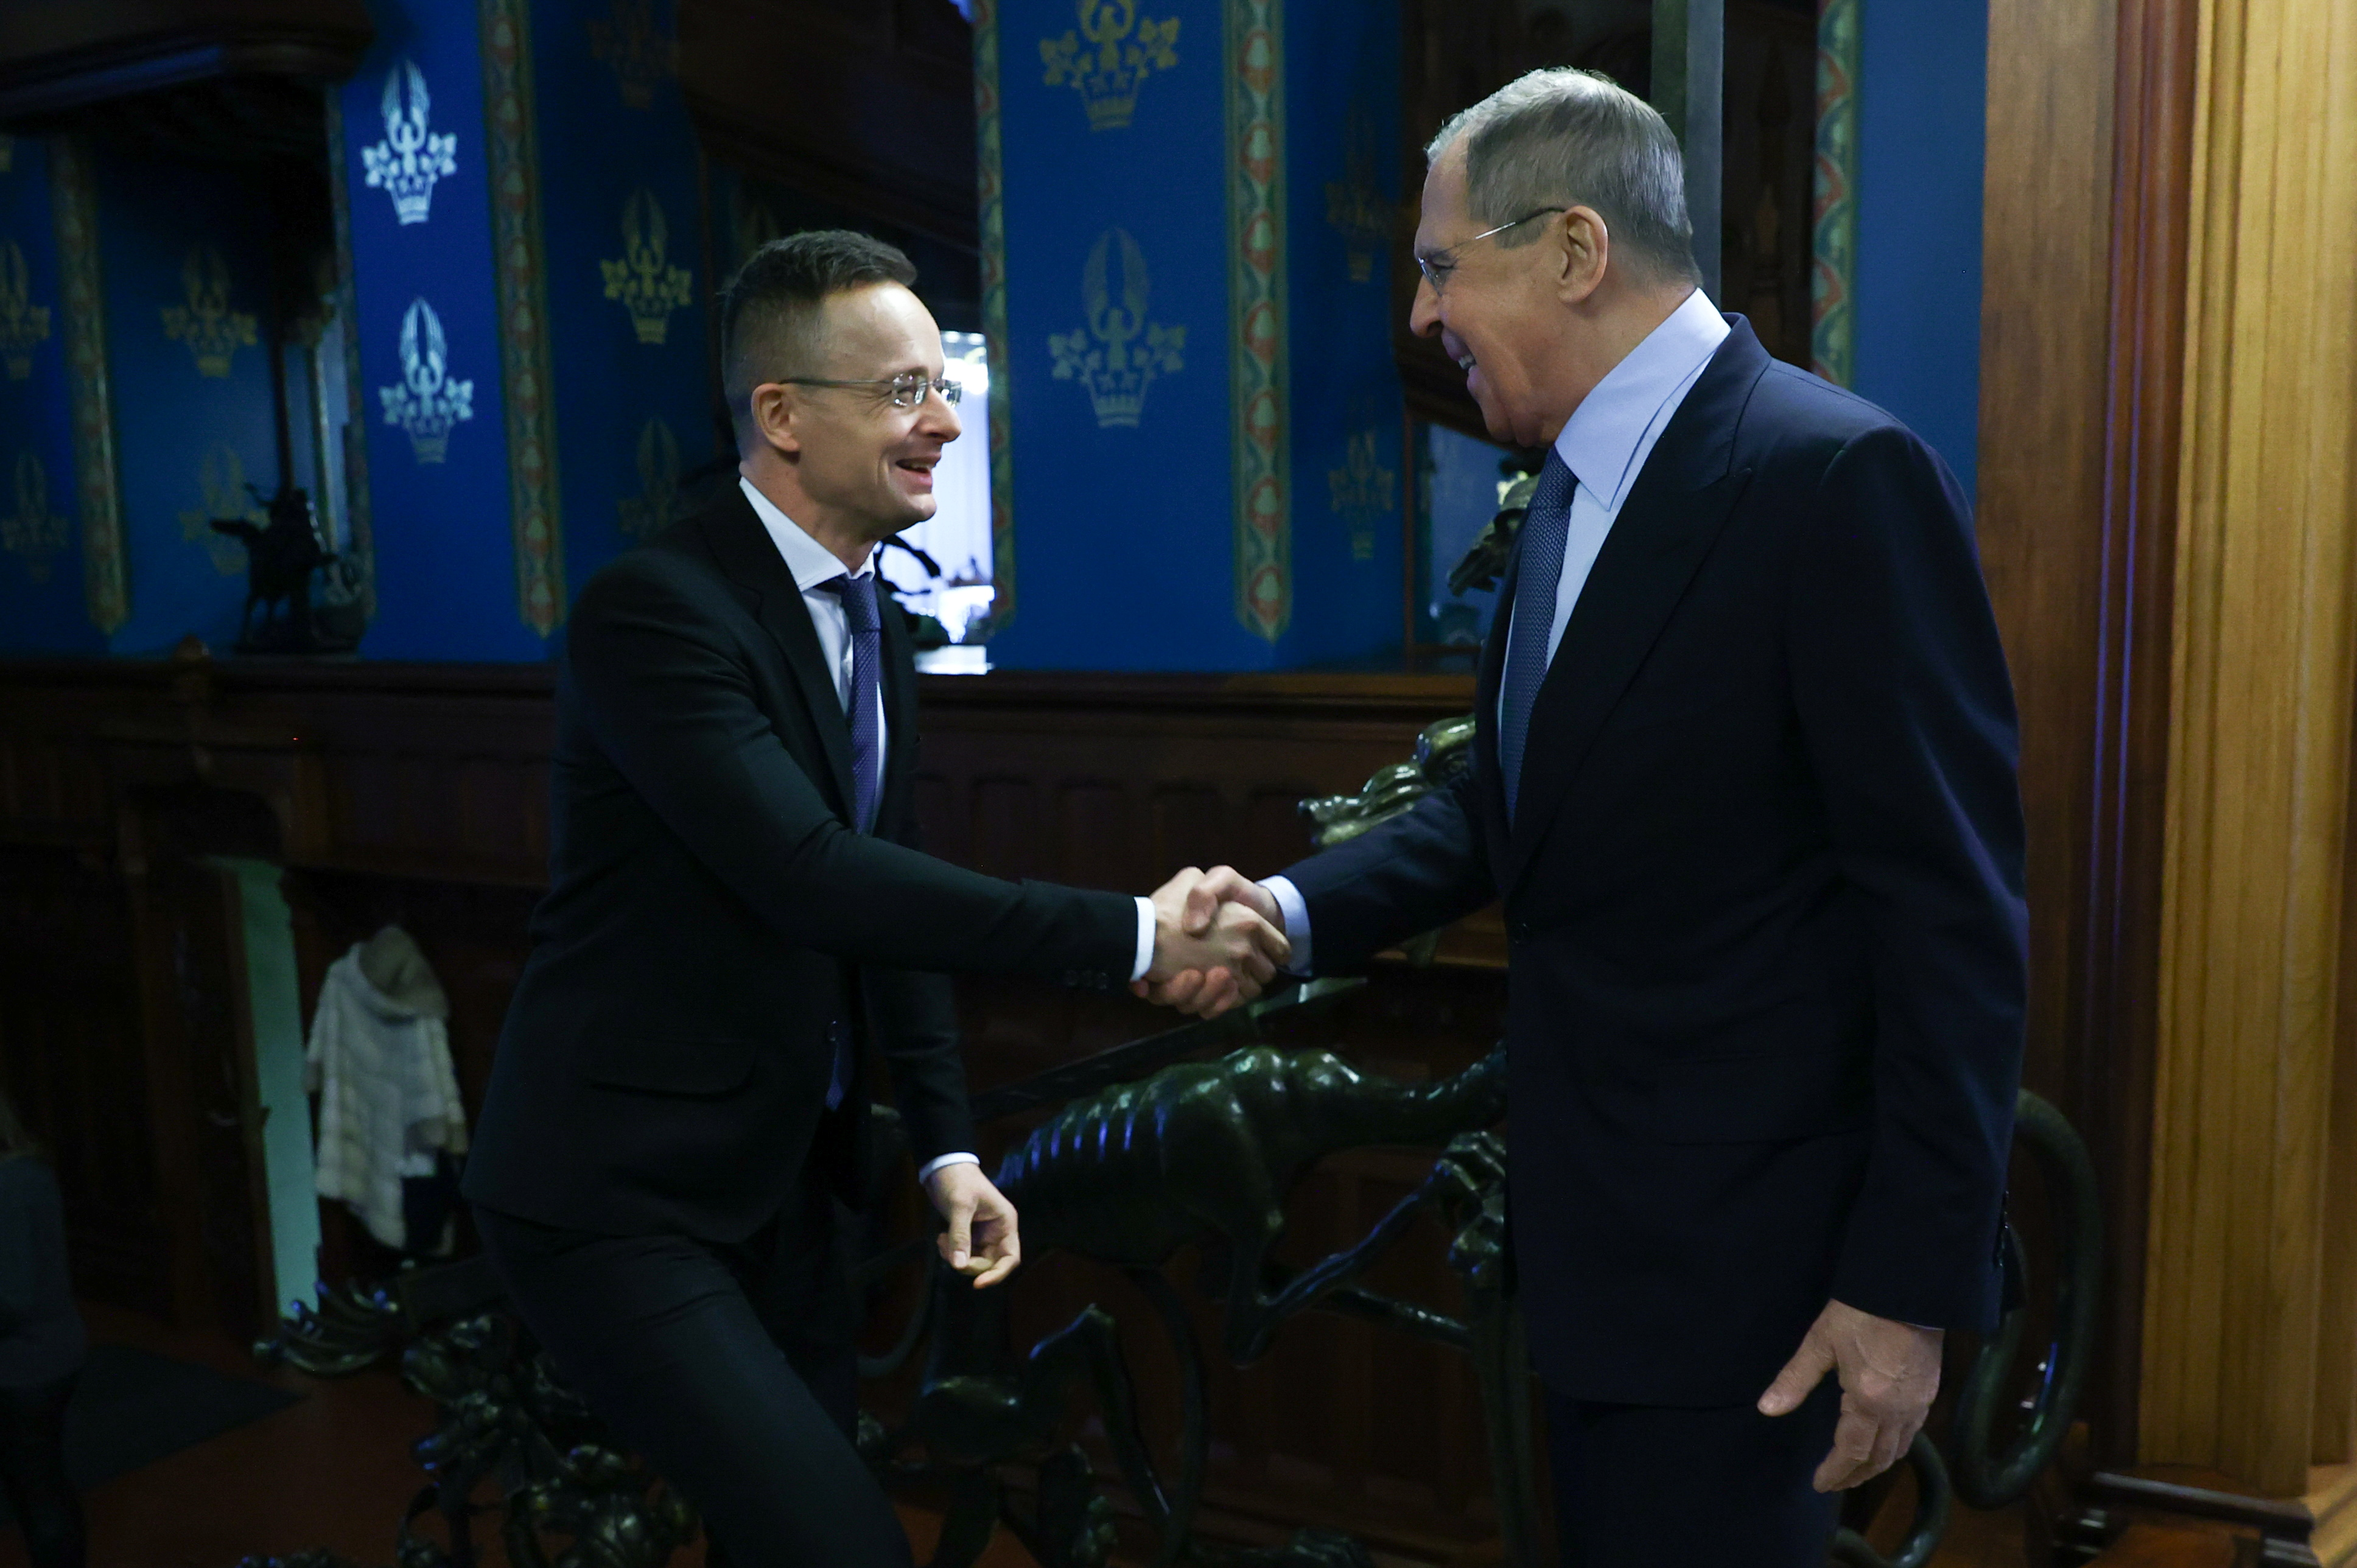 Russian Foreign Minister Sergei Lavrov greets Hungarian Foreign Minister Peter Szijjarto during a meeting in Moscow, Russia January 22, 2021. Russian Foreign Ministry/Handout via REUTERS